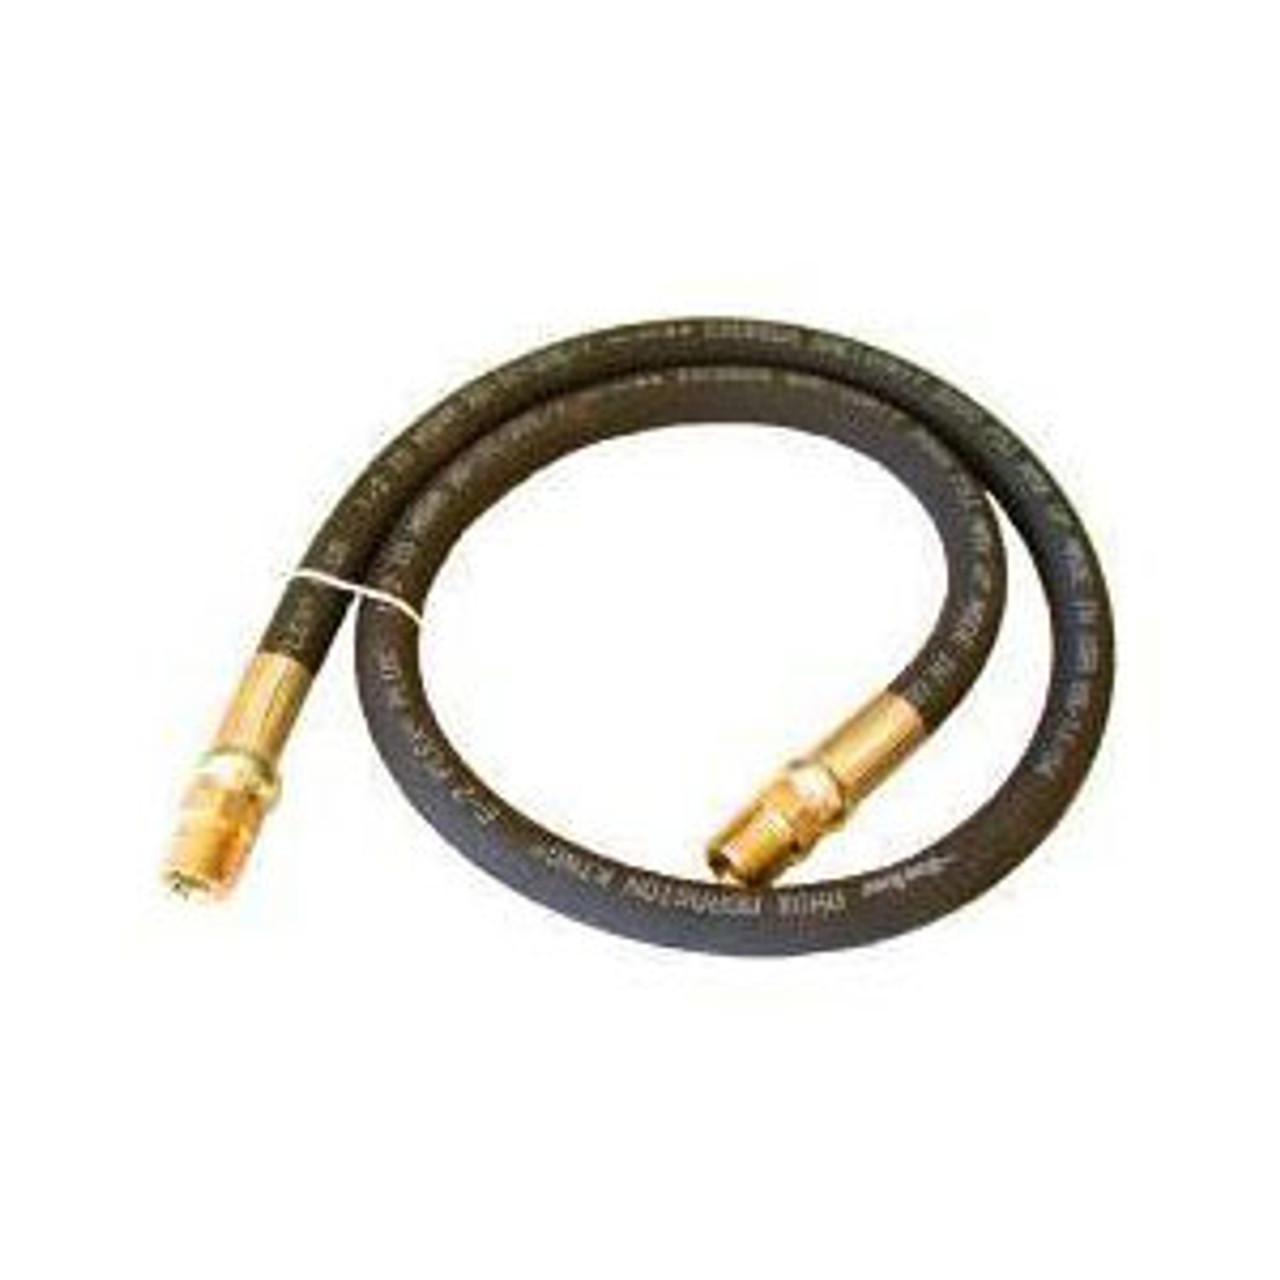 NPTM-NPTF Wolflube Connection Grease Hose 10ft 1//4in